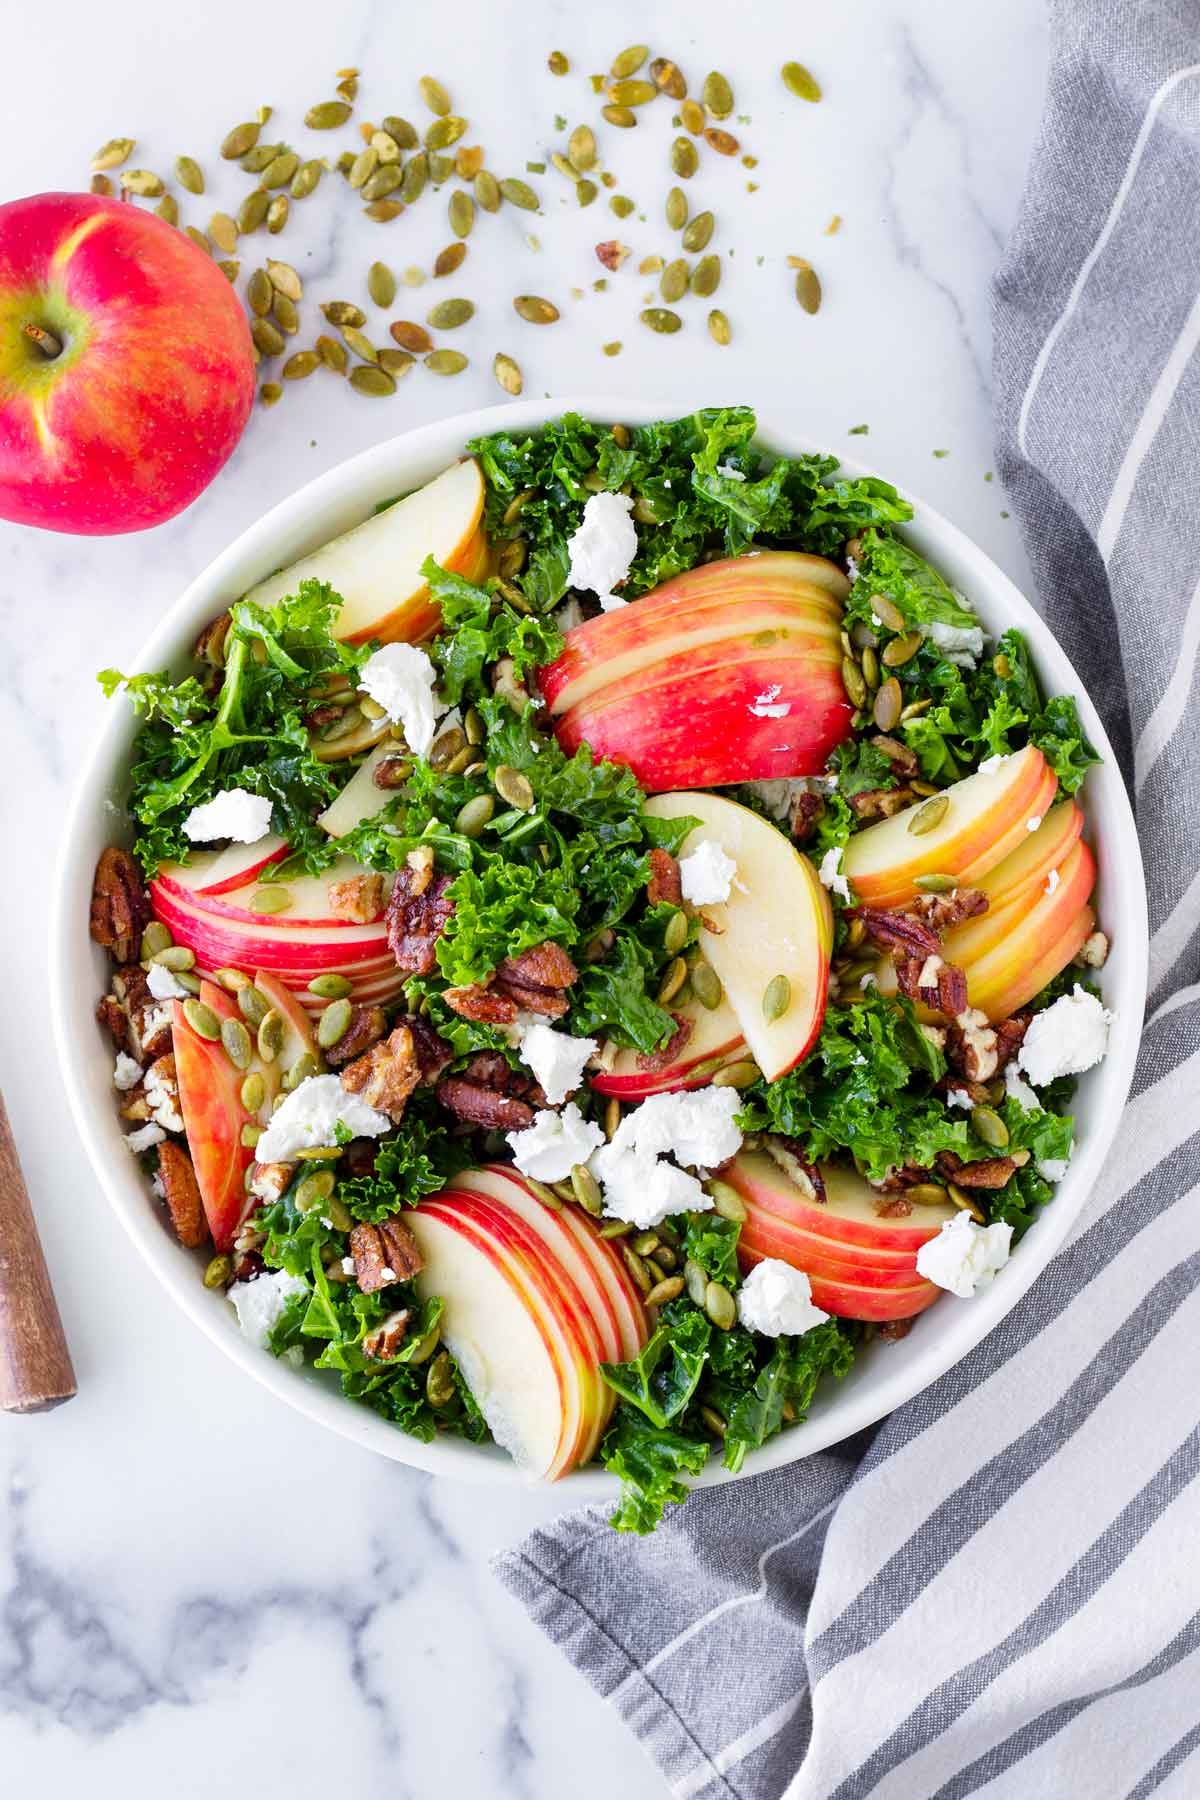 top view of a decorated apple kale salad next to napkin